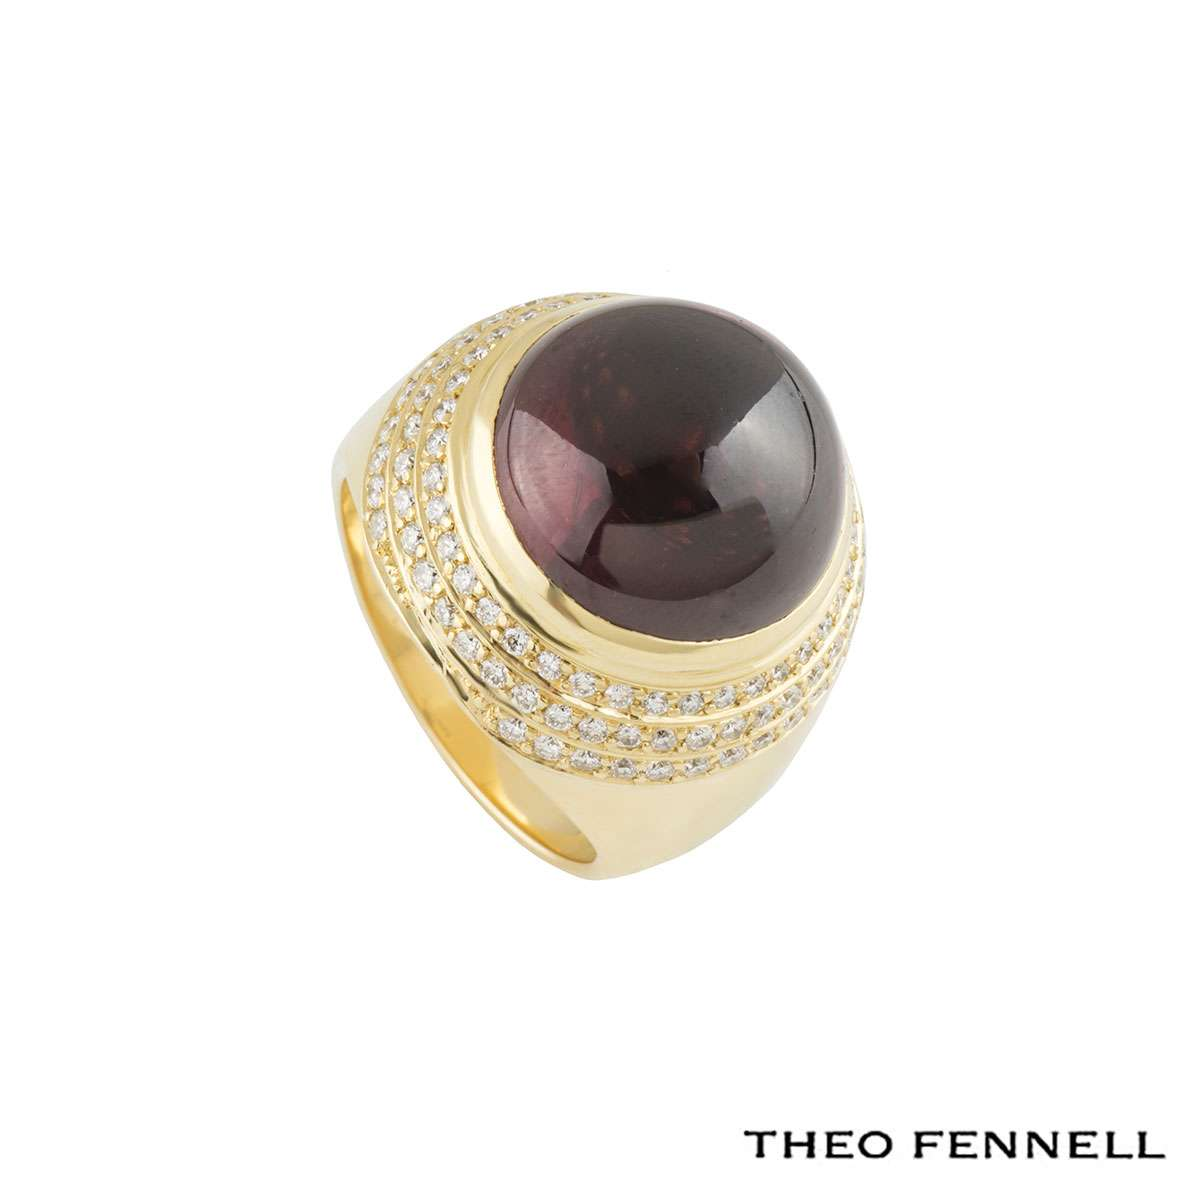 Theo Fennell Diamond and Garnet Dress Ring